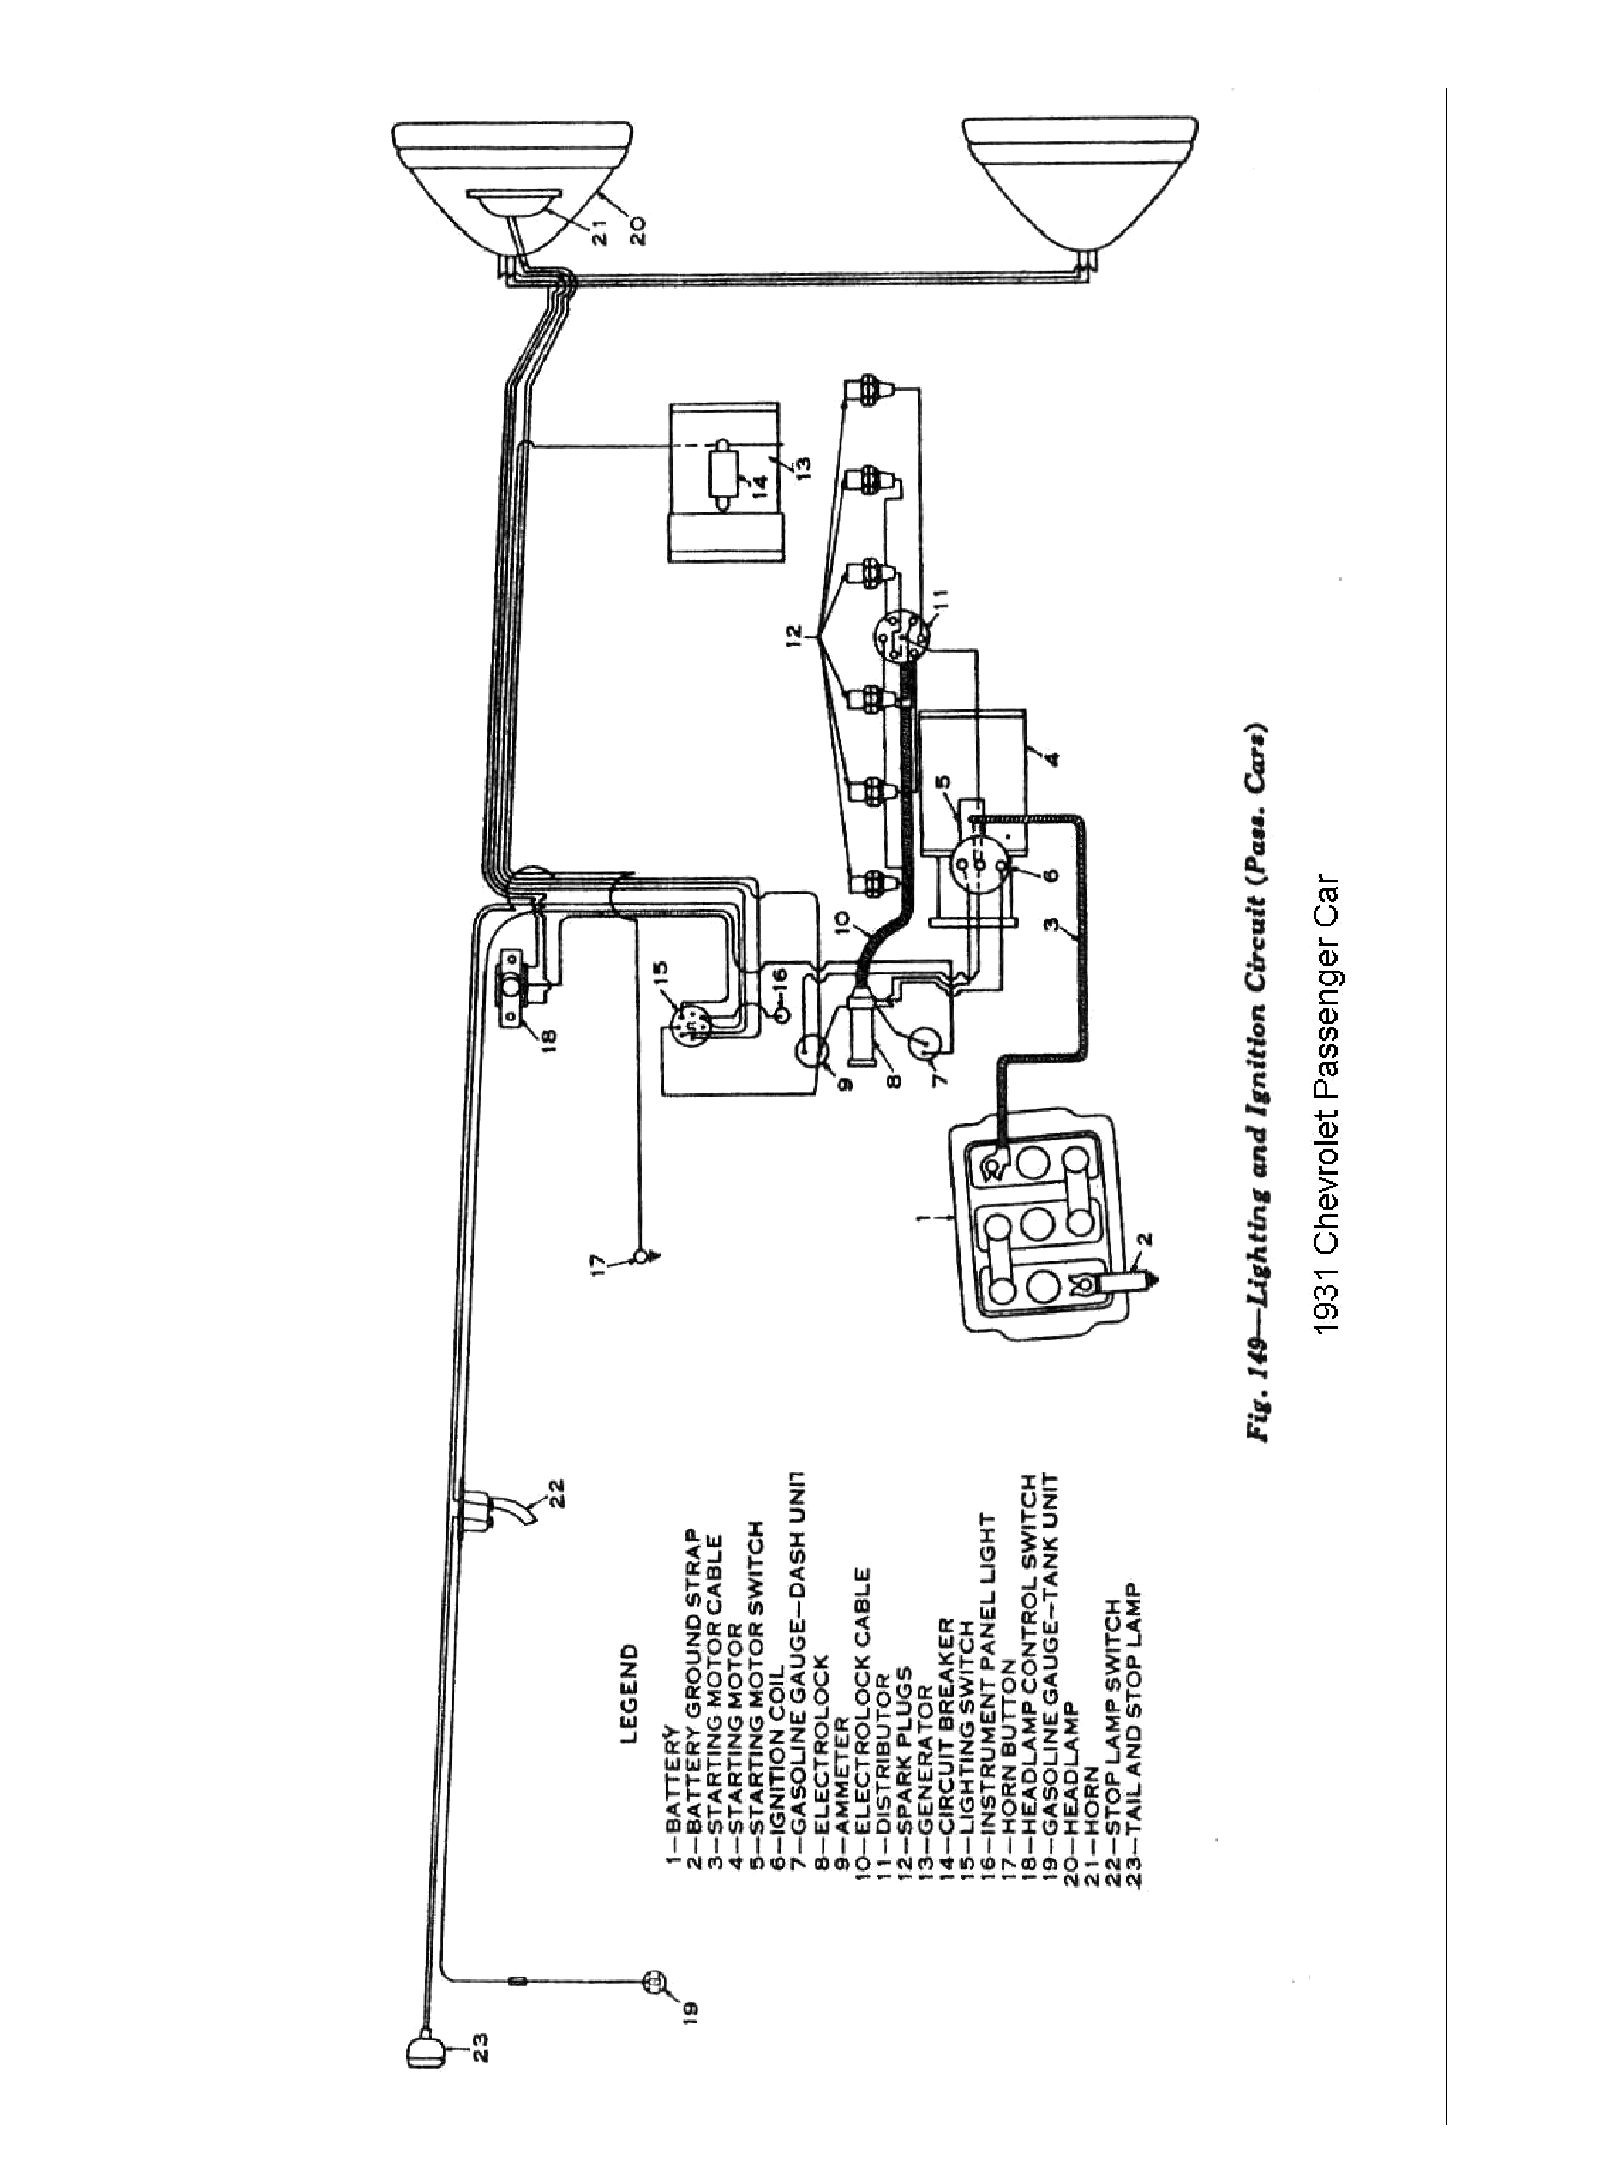 ... chevy fuel sending unit wiring diagram wiring 1986 F150 Fuel Sending  Unit gm fuel sending unit